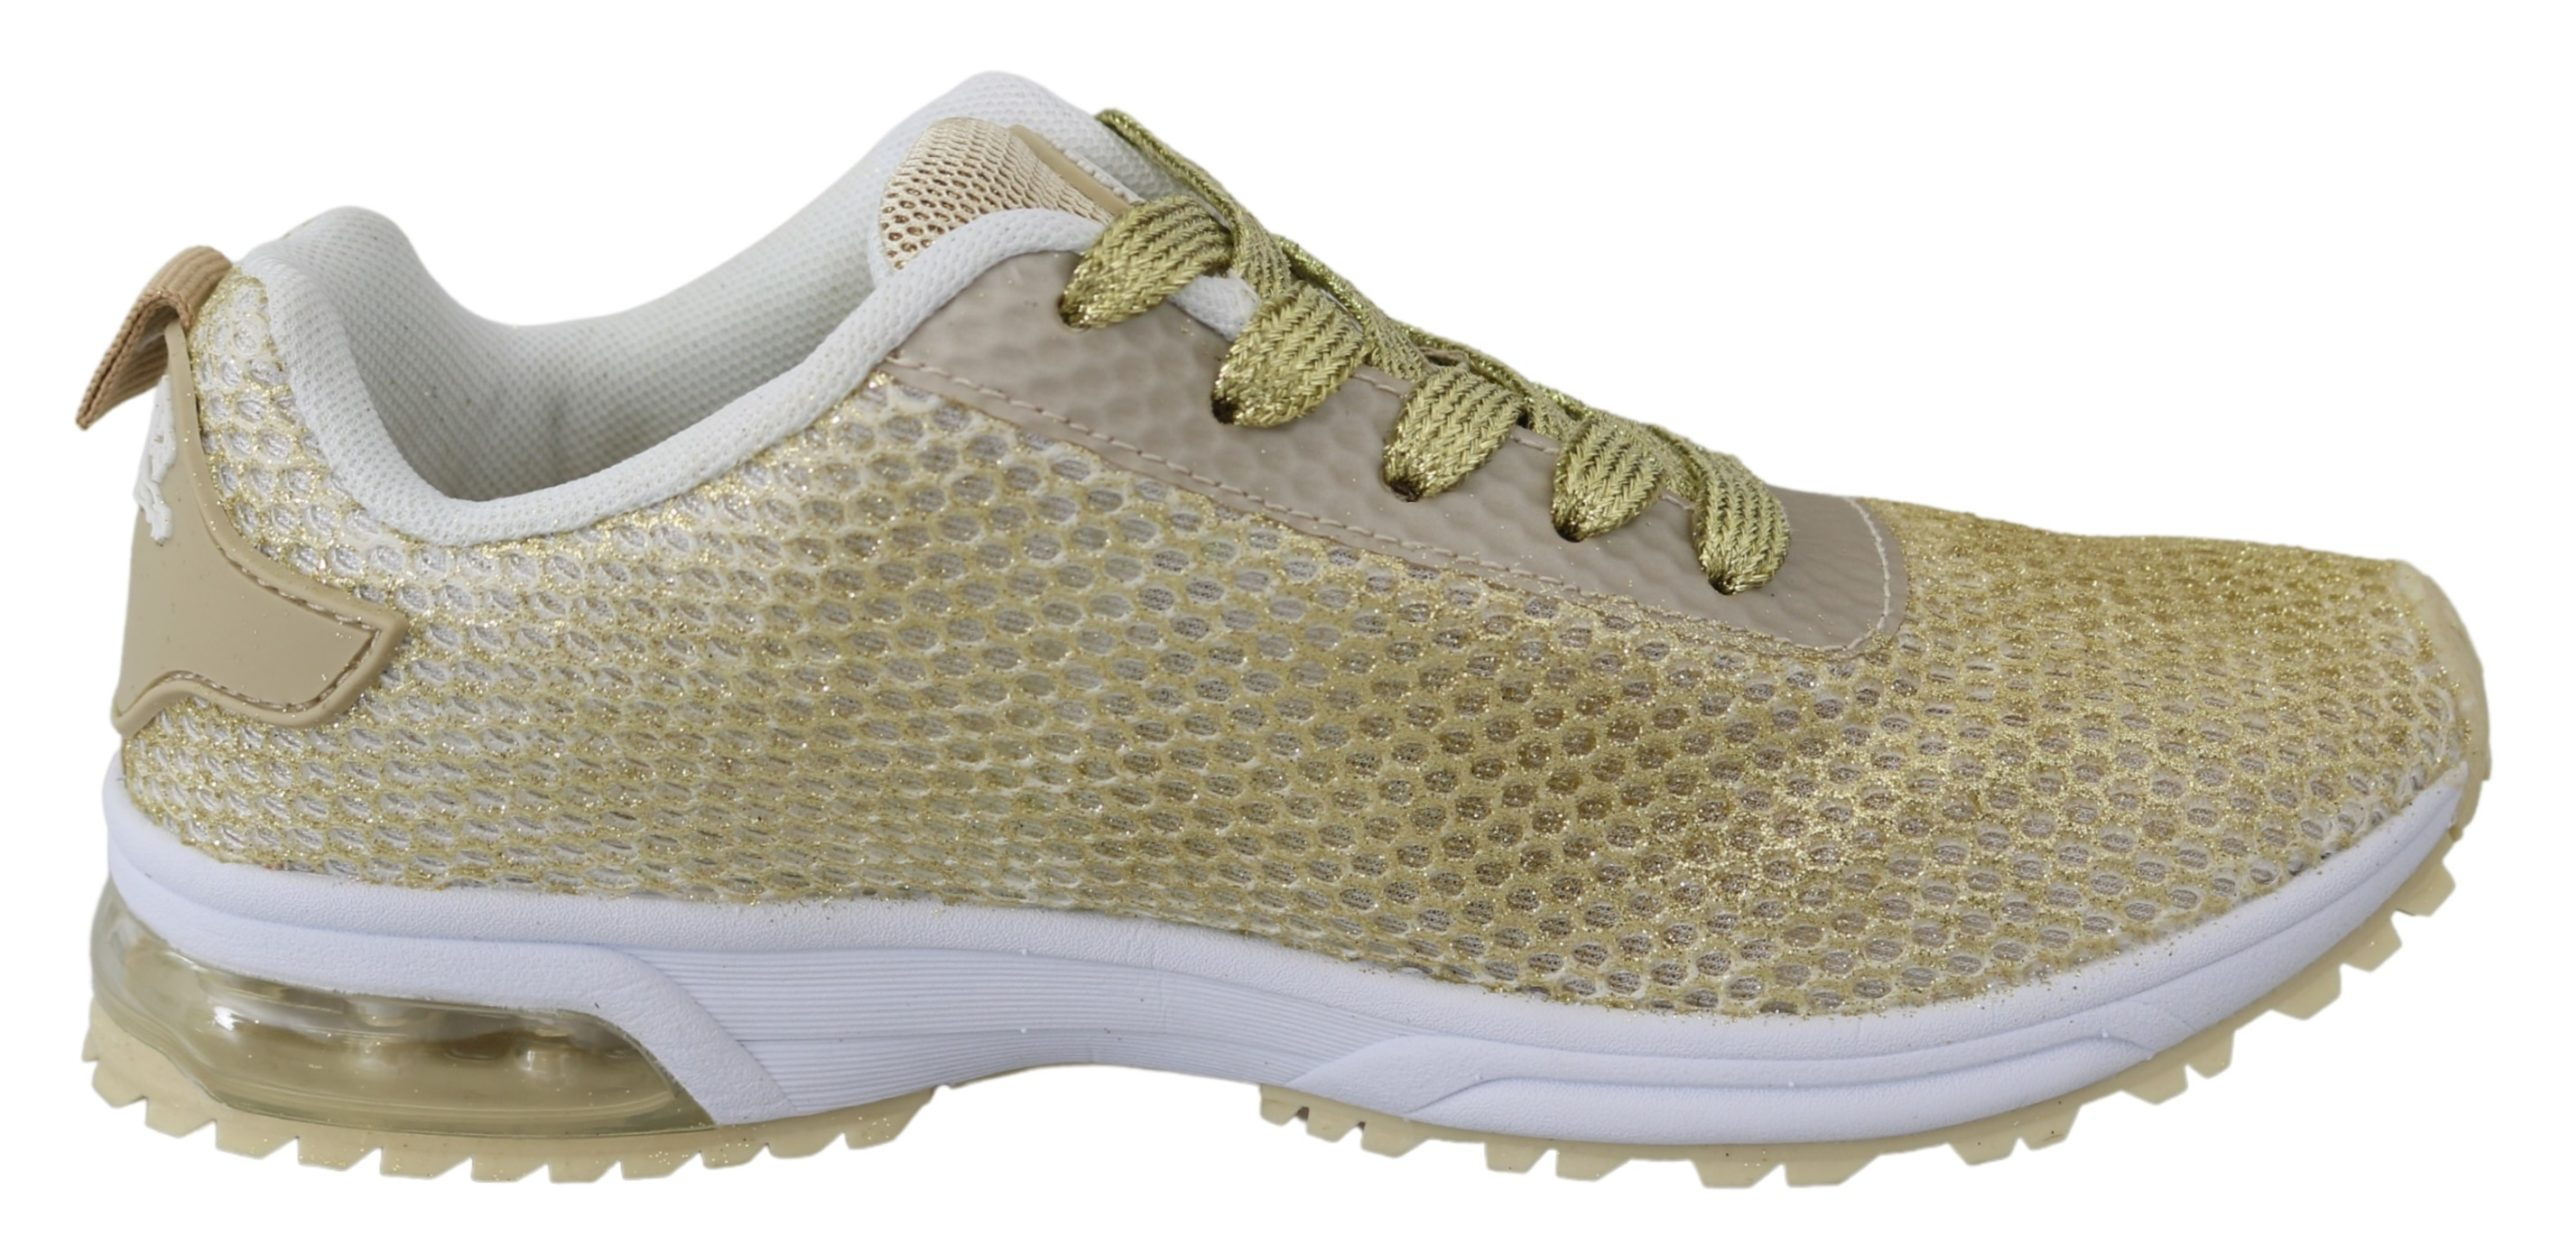 Gold Polyester Gretel Sneakers Shoes - EU36/US6